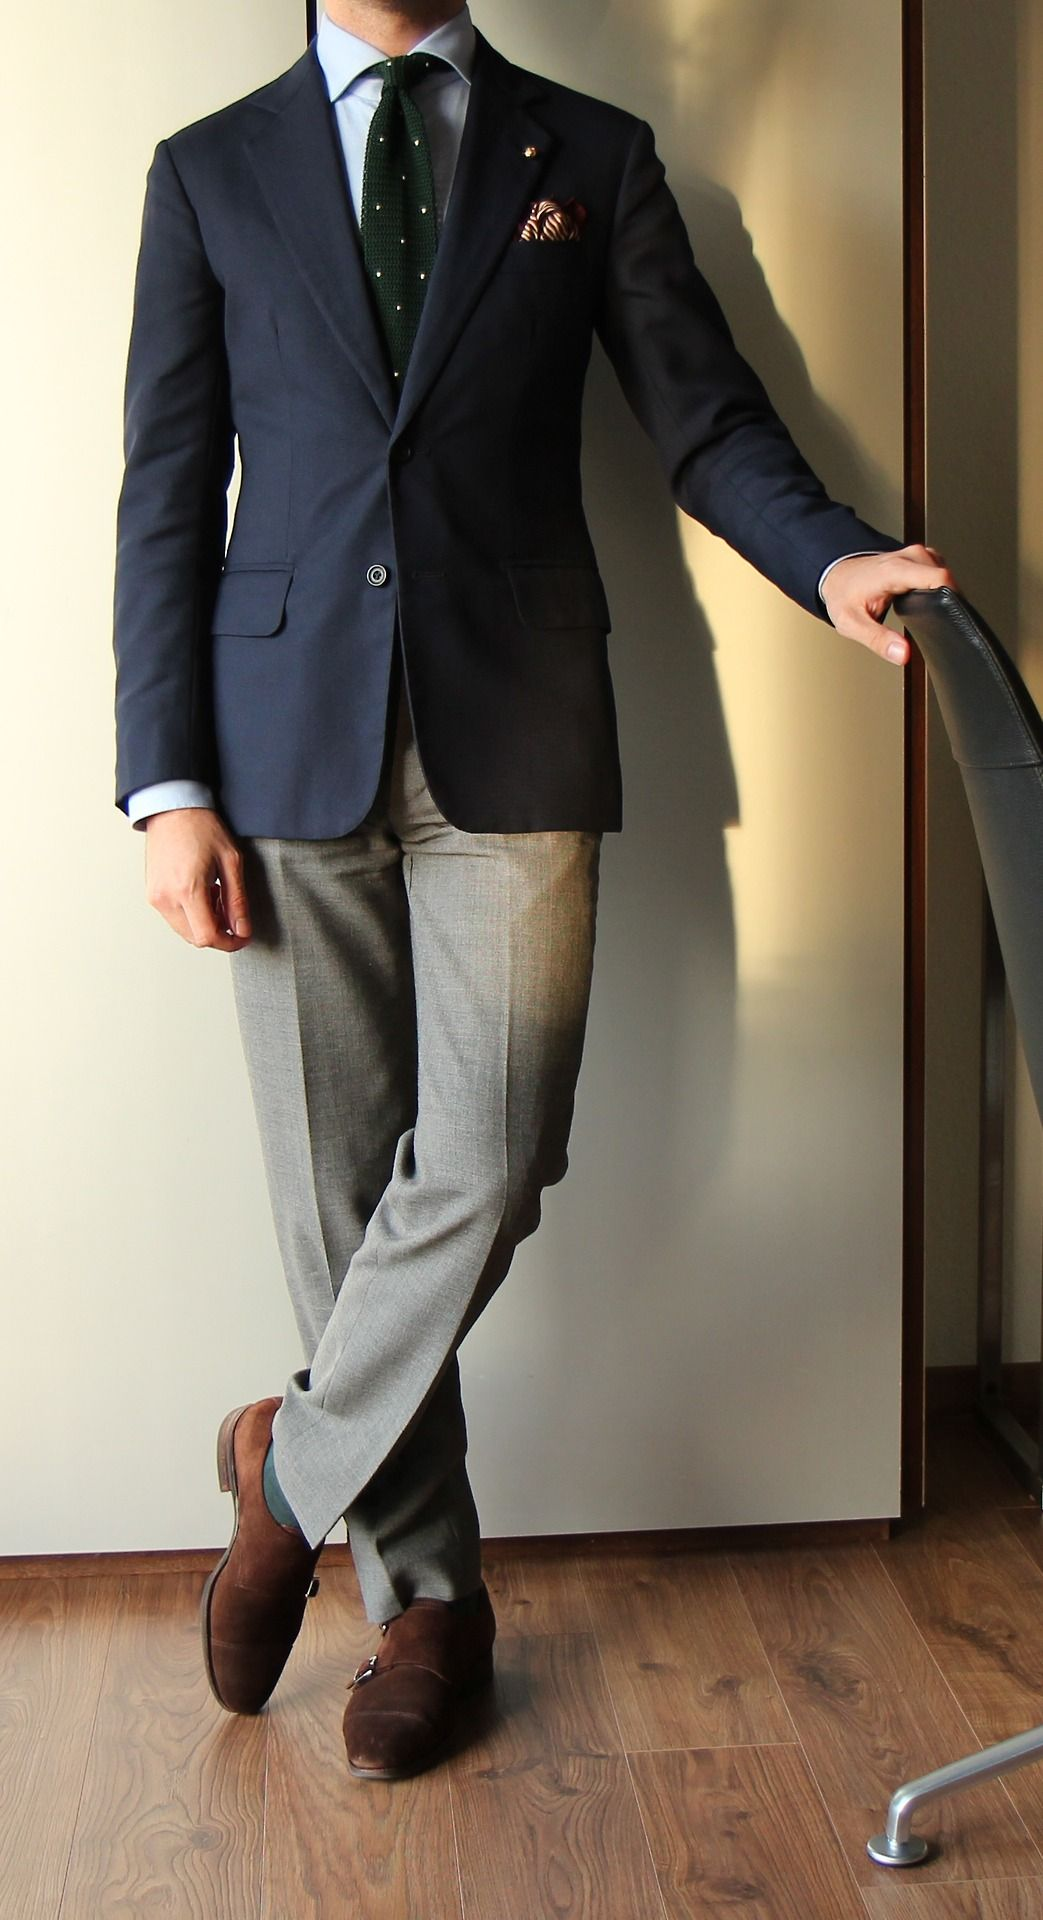 Navy jacket, light blue shirt, green knit tie with white